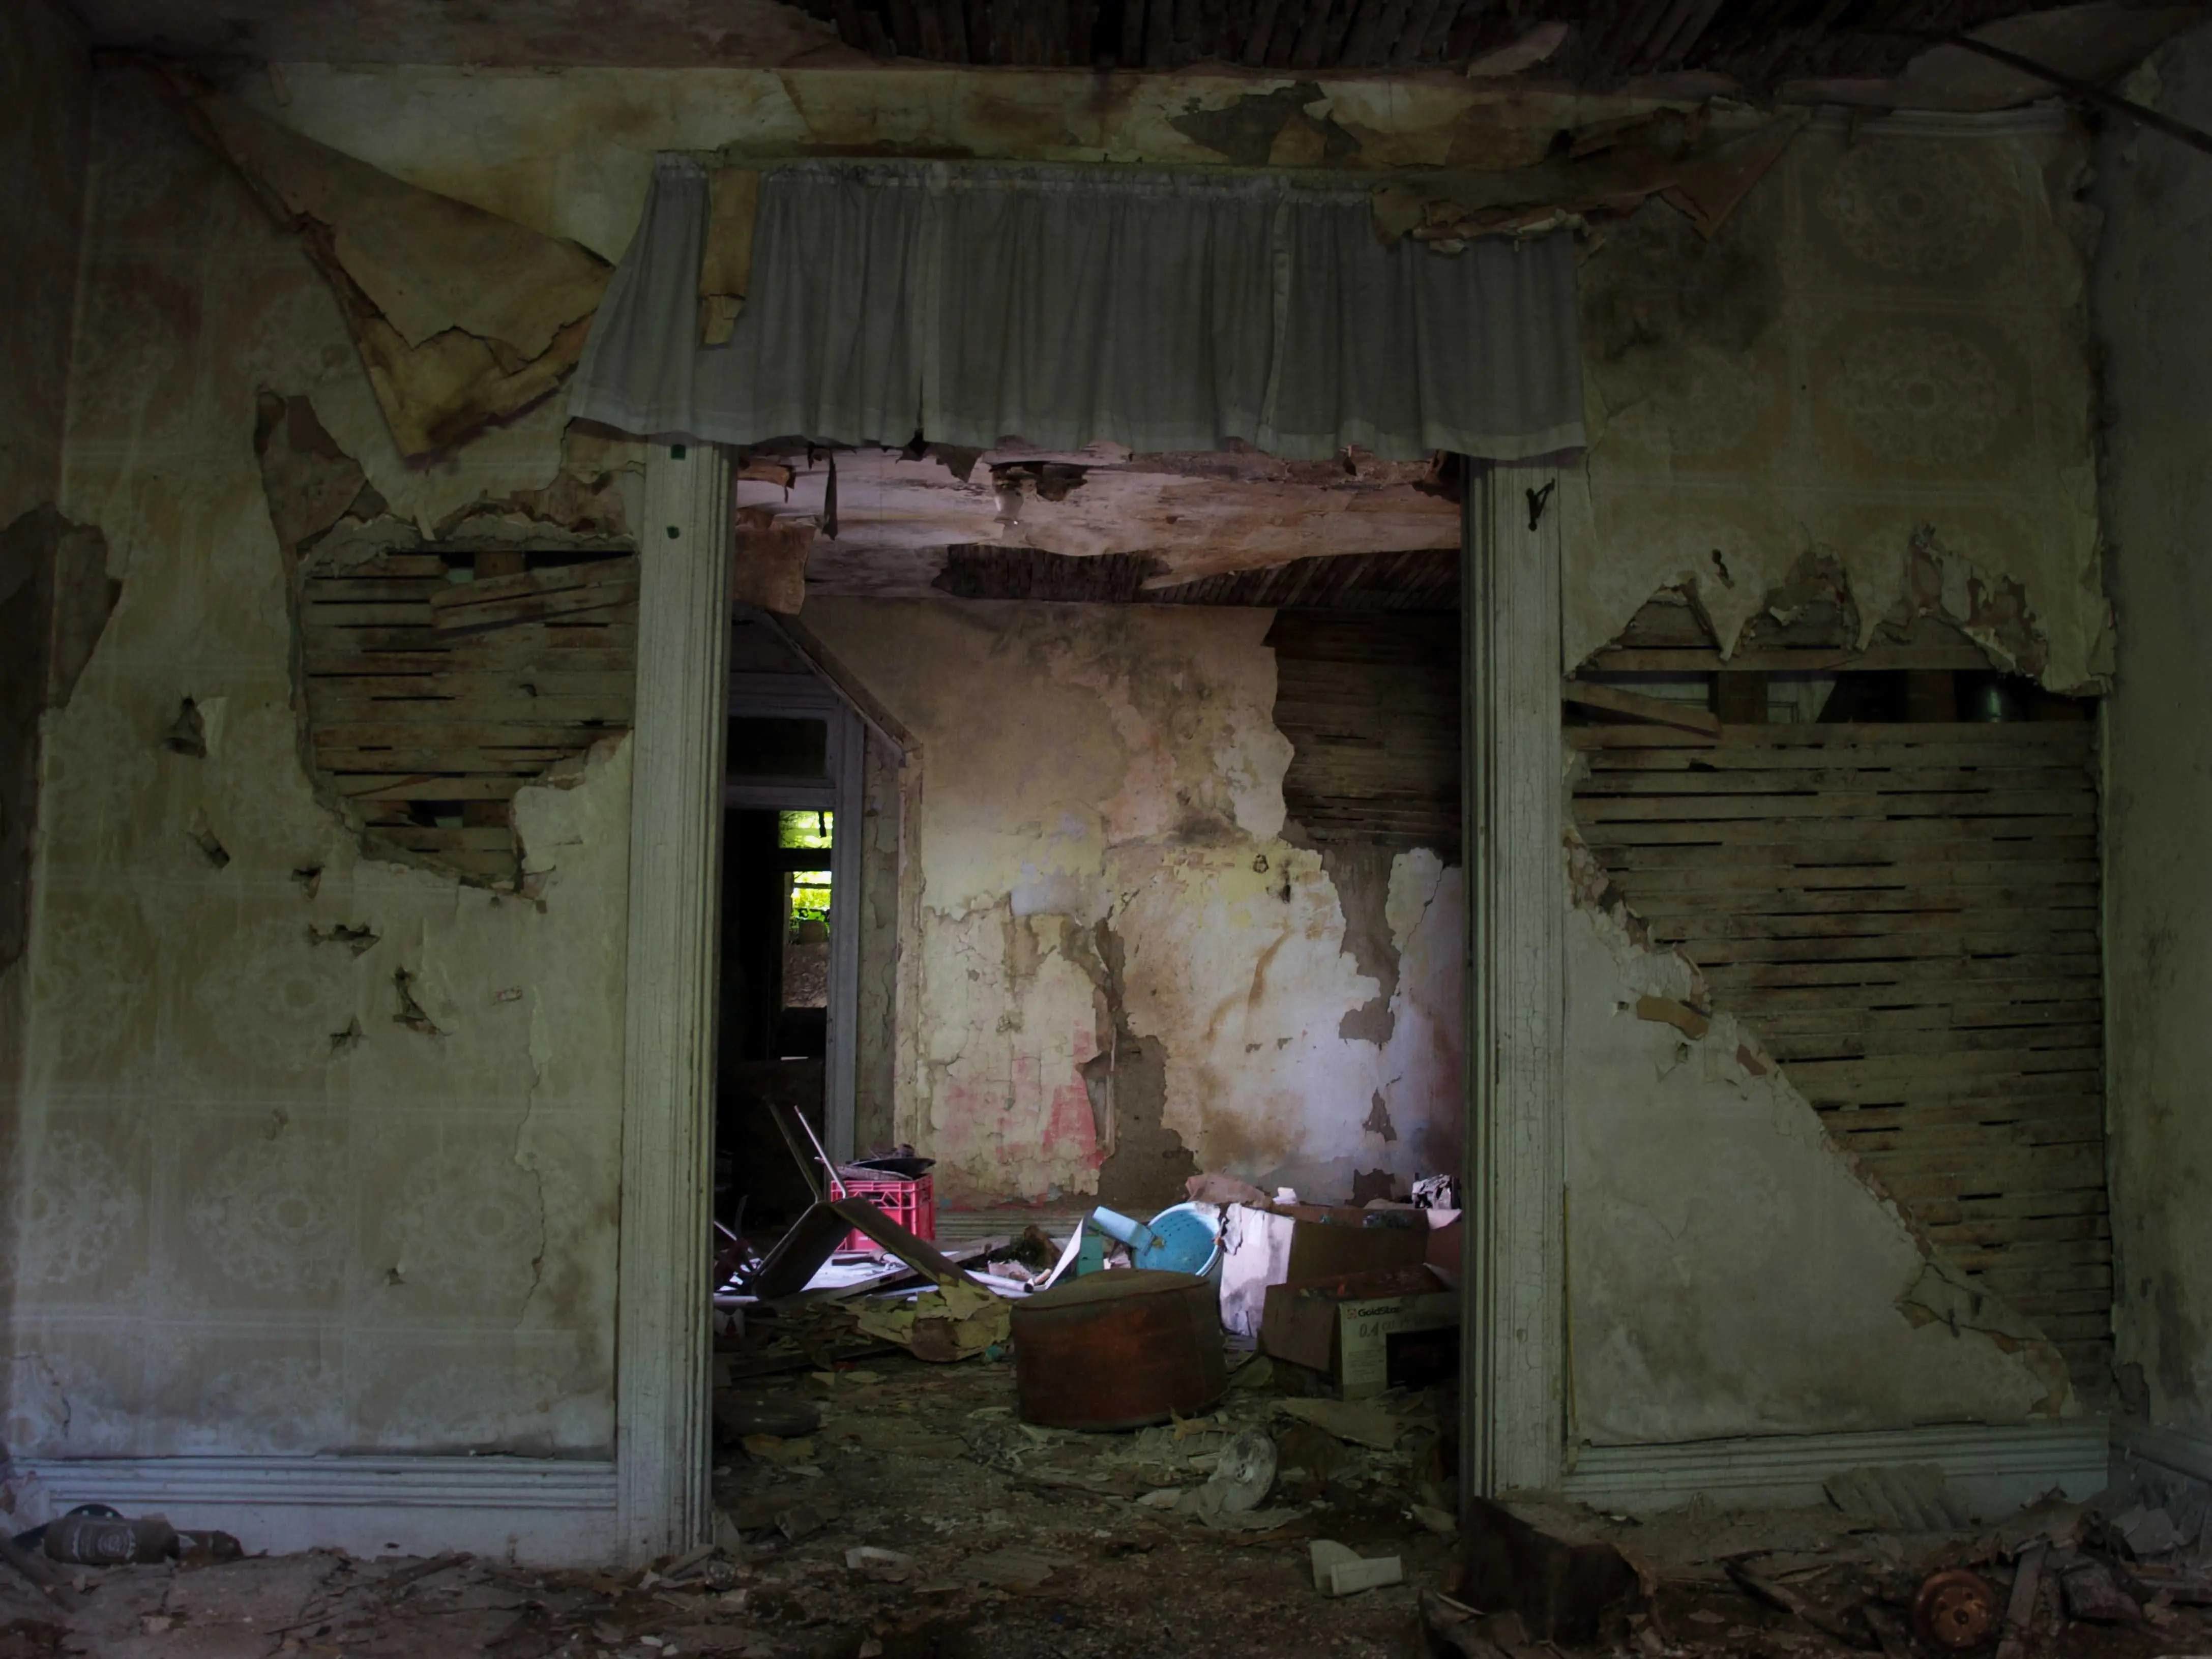 Akron Ohio the childhood bedroom of one of the most notorious serial killers in American history, Robert Berdella also known as the Butcher of Kansas City